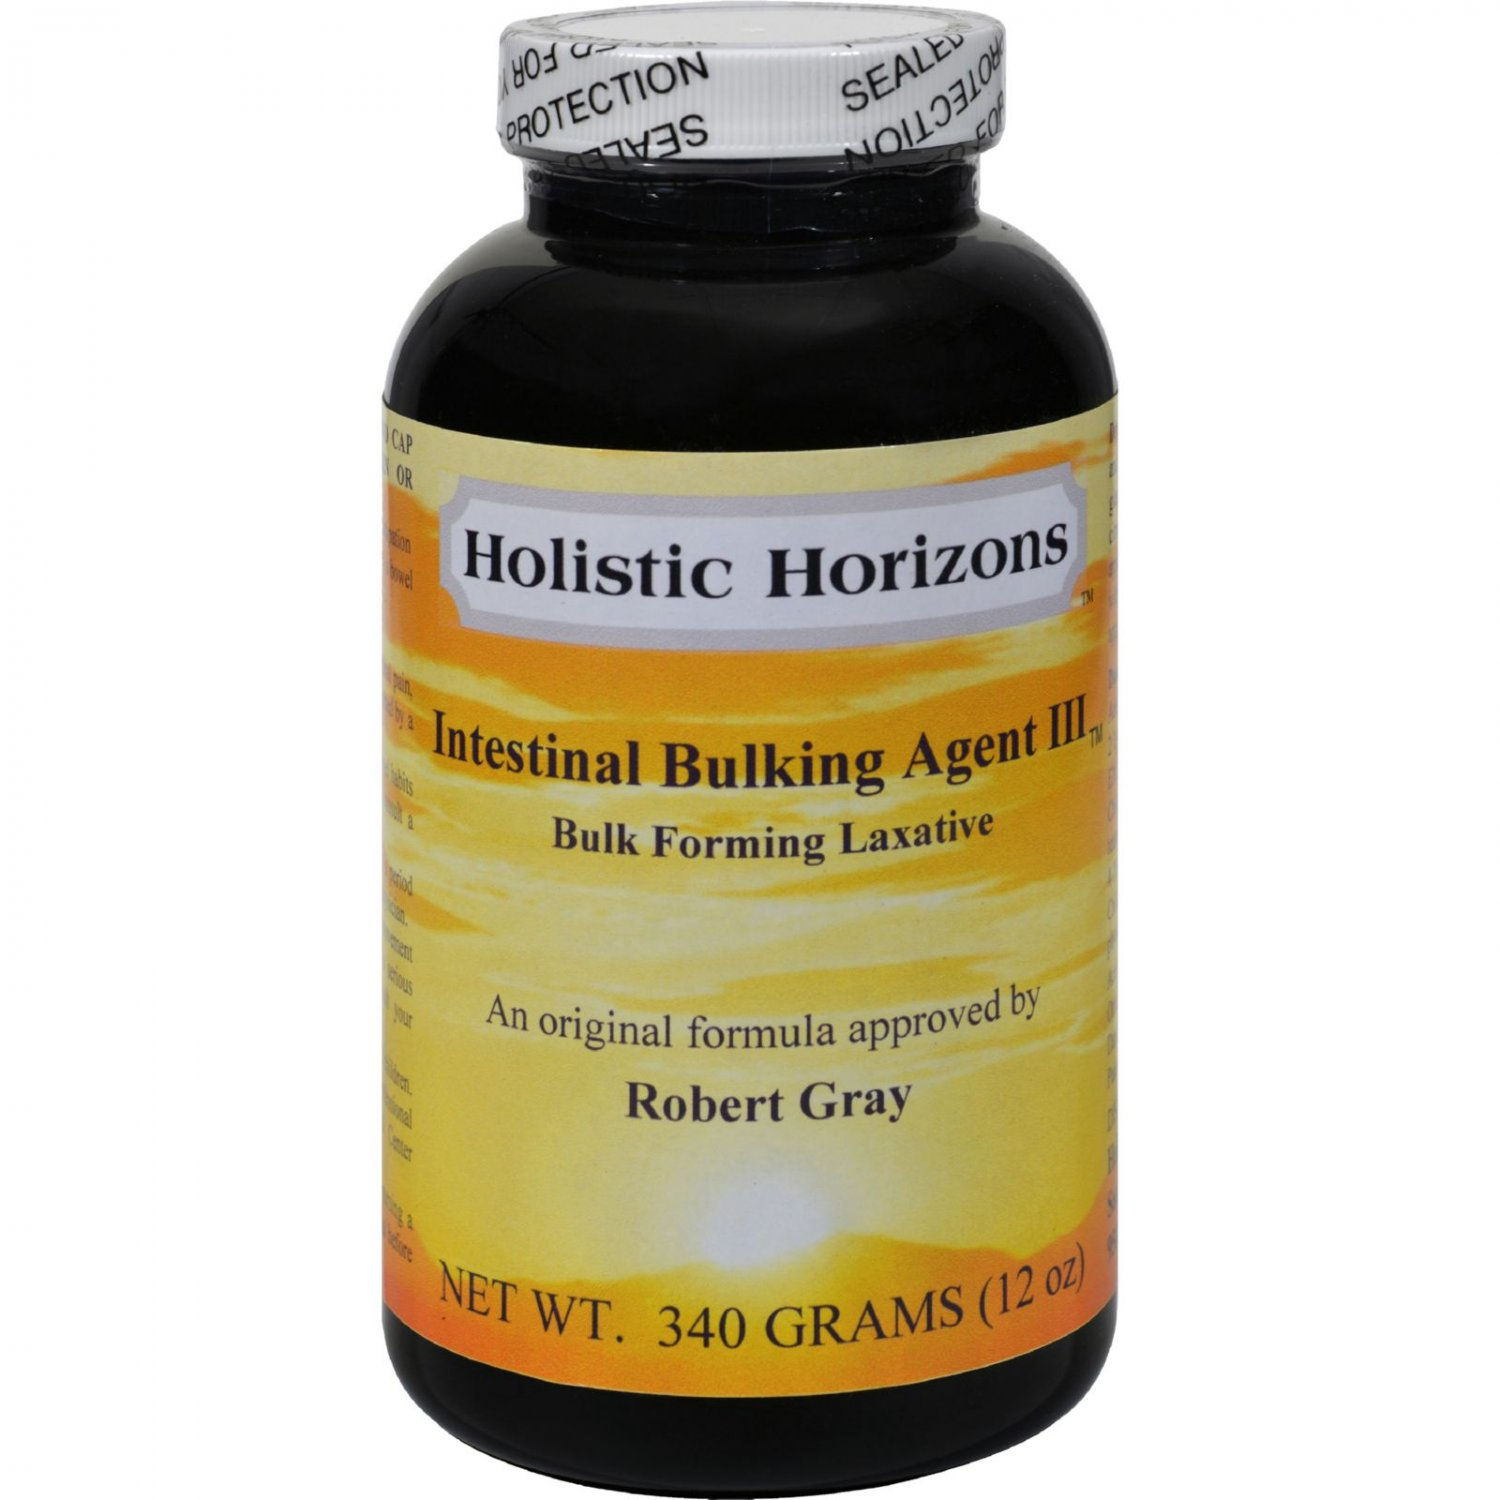 Holistic Horizons Intestinal Bulking Agent III - 12 oz